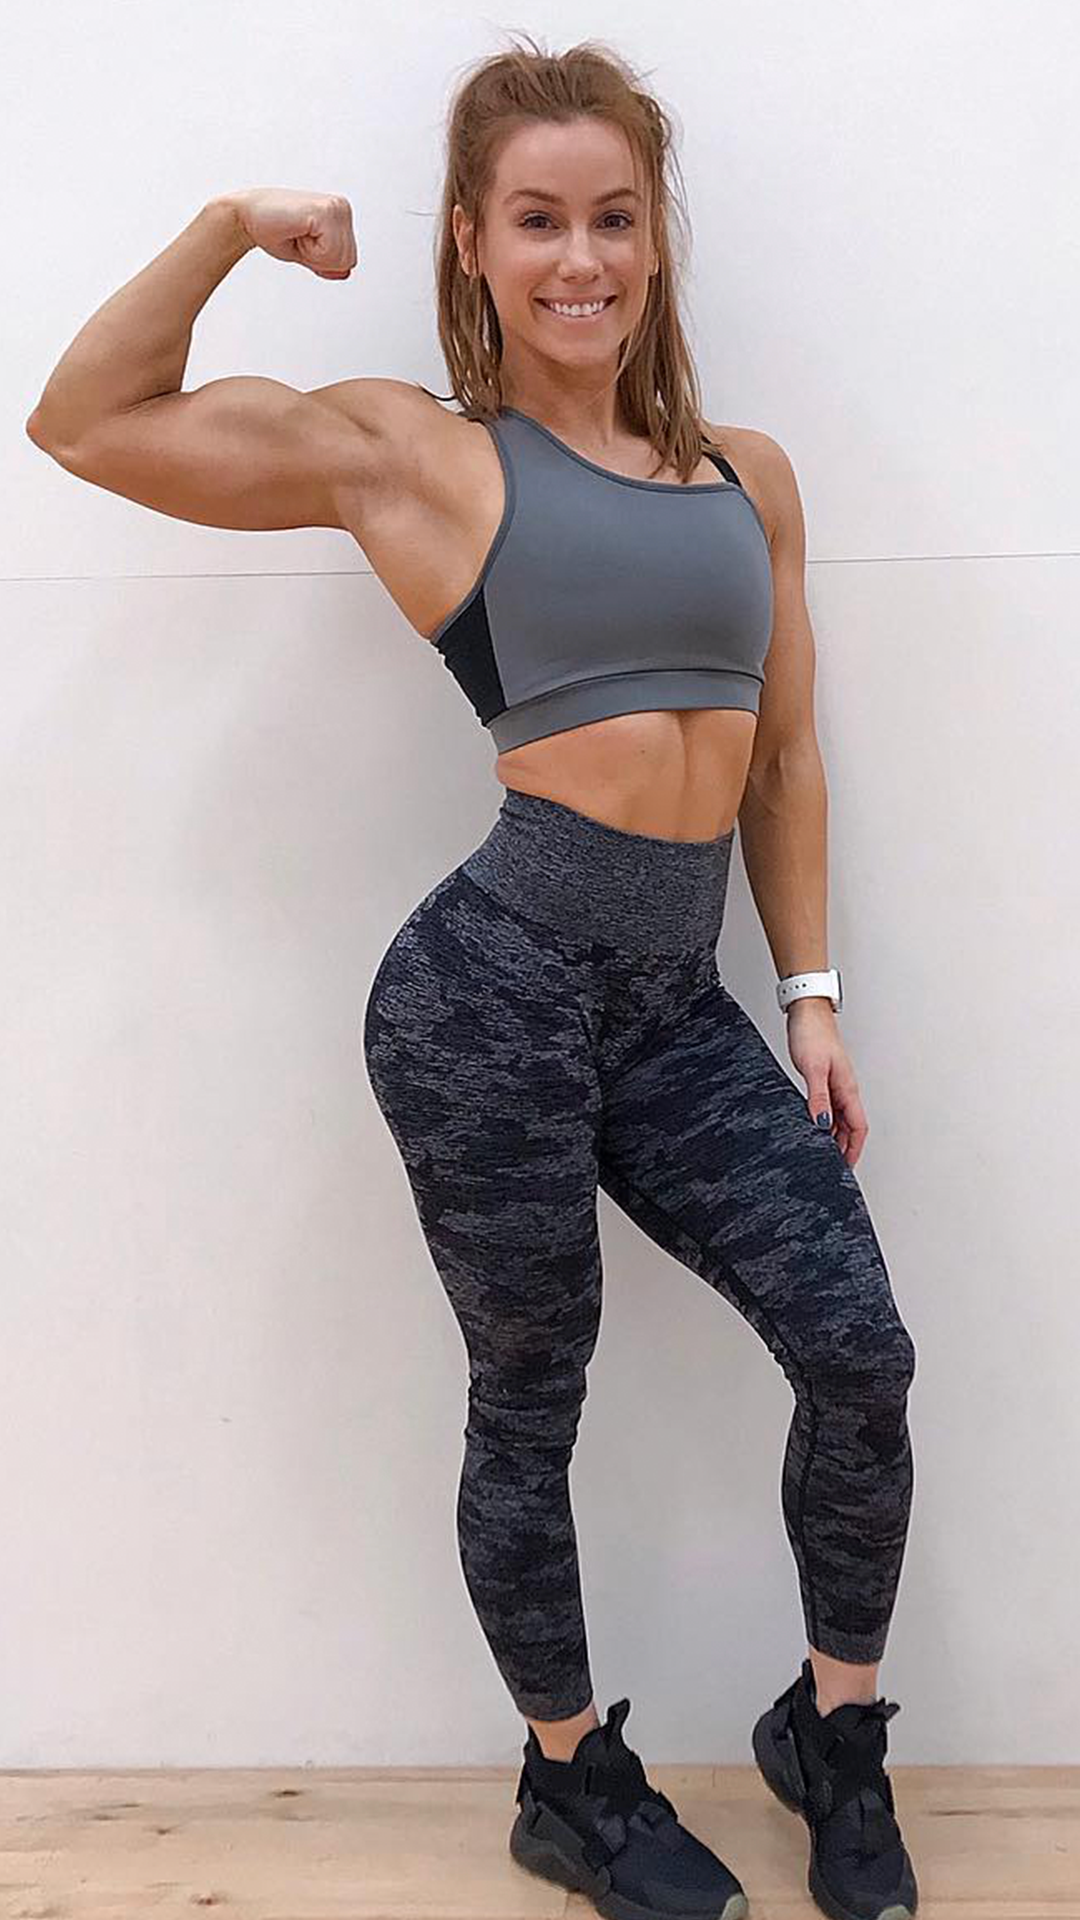 8b722114be8c4 Lauren Findley, Gymshark Athlete mixes and matches the Camo Seamless  Leggings with the Asymmetric Sports Bra. A cool, contemporary look for your  workouts!